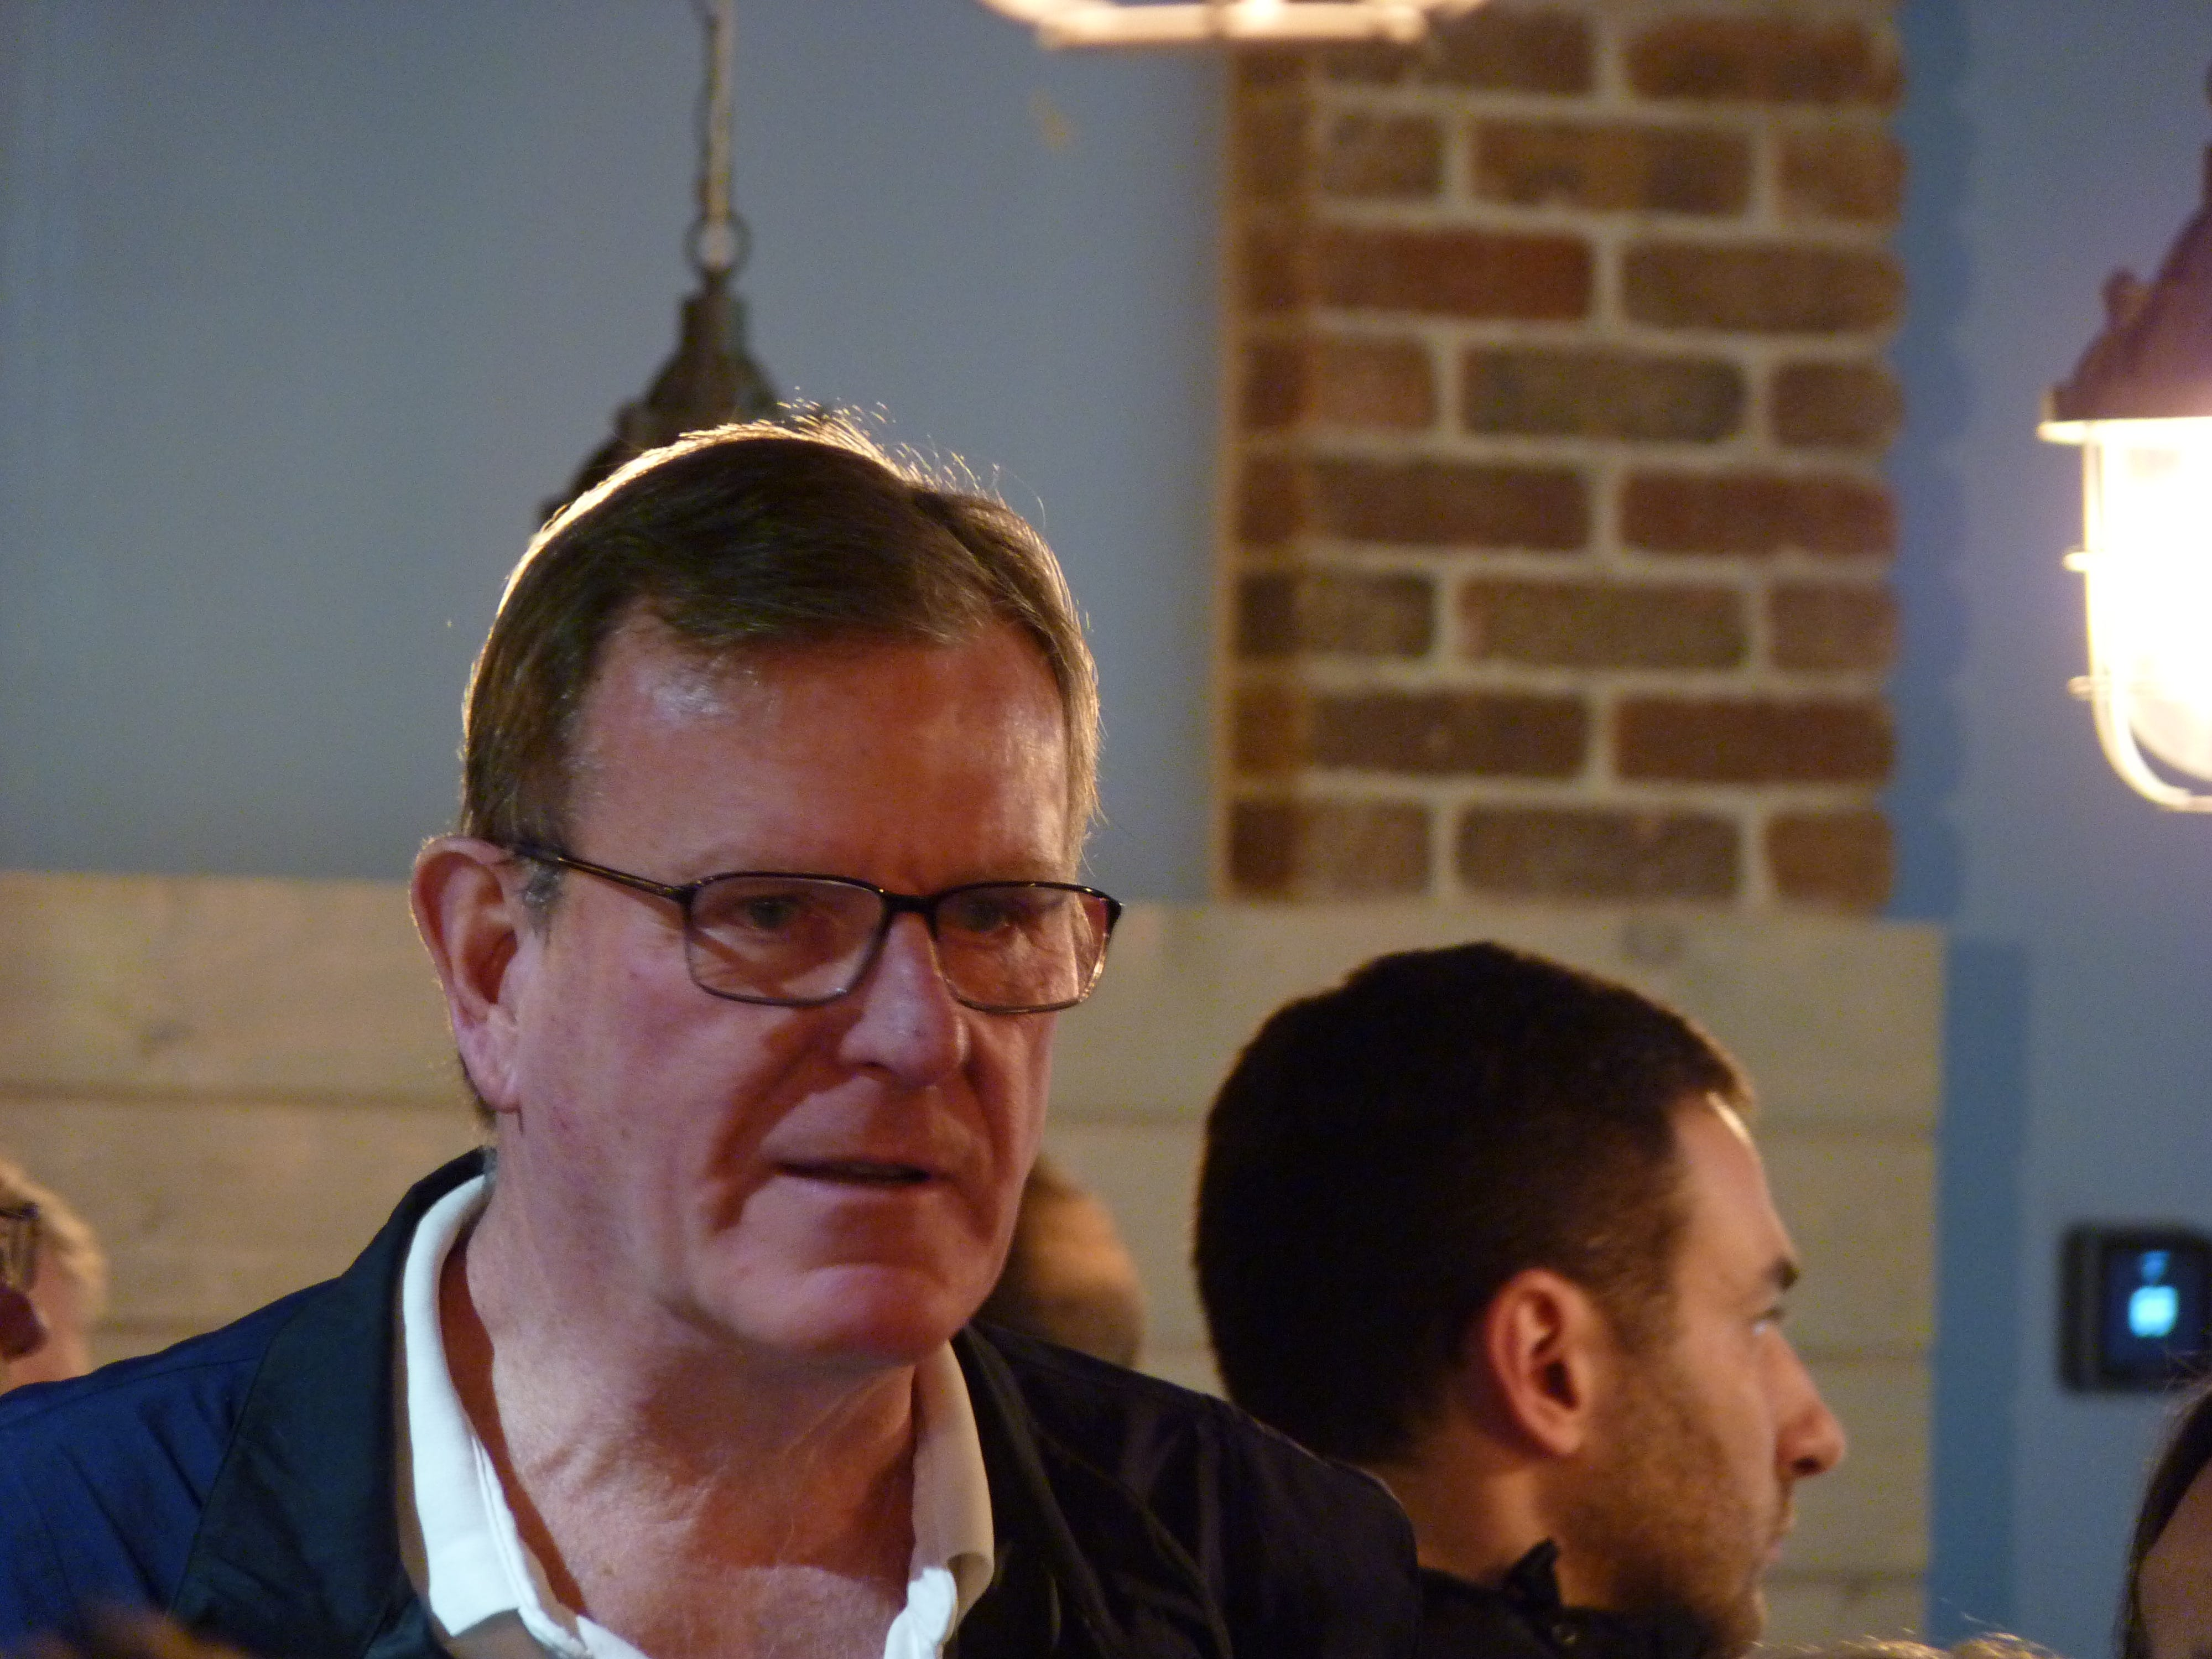 Michael Kerwin, president and CEO of Somerset County Business Partnership, at  Jersey Cyclone Brewing Company, which officially opened its doors on Saturday, May 4 at 14 Worlds Fair Dr. in Somerset.